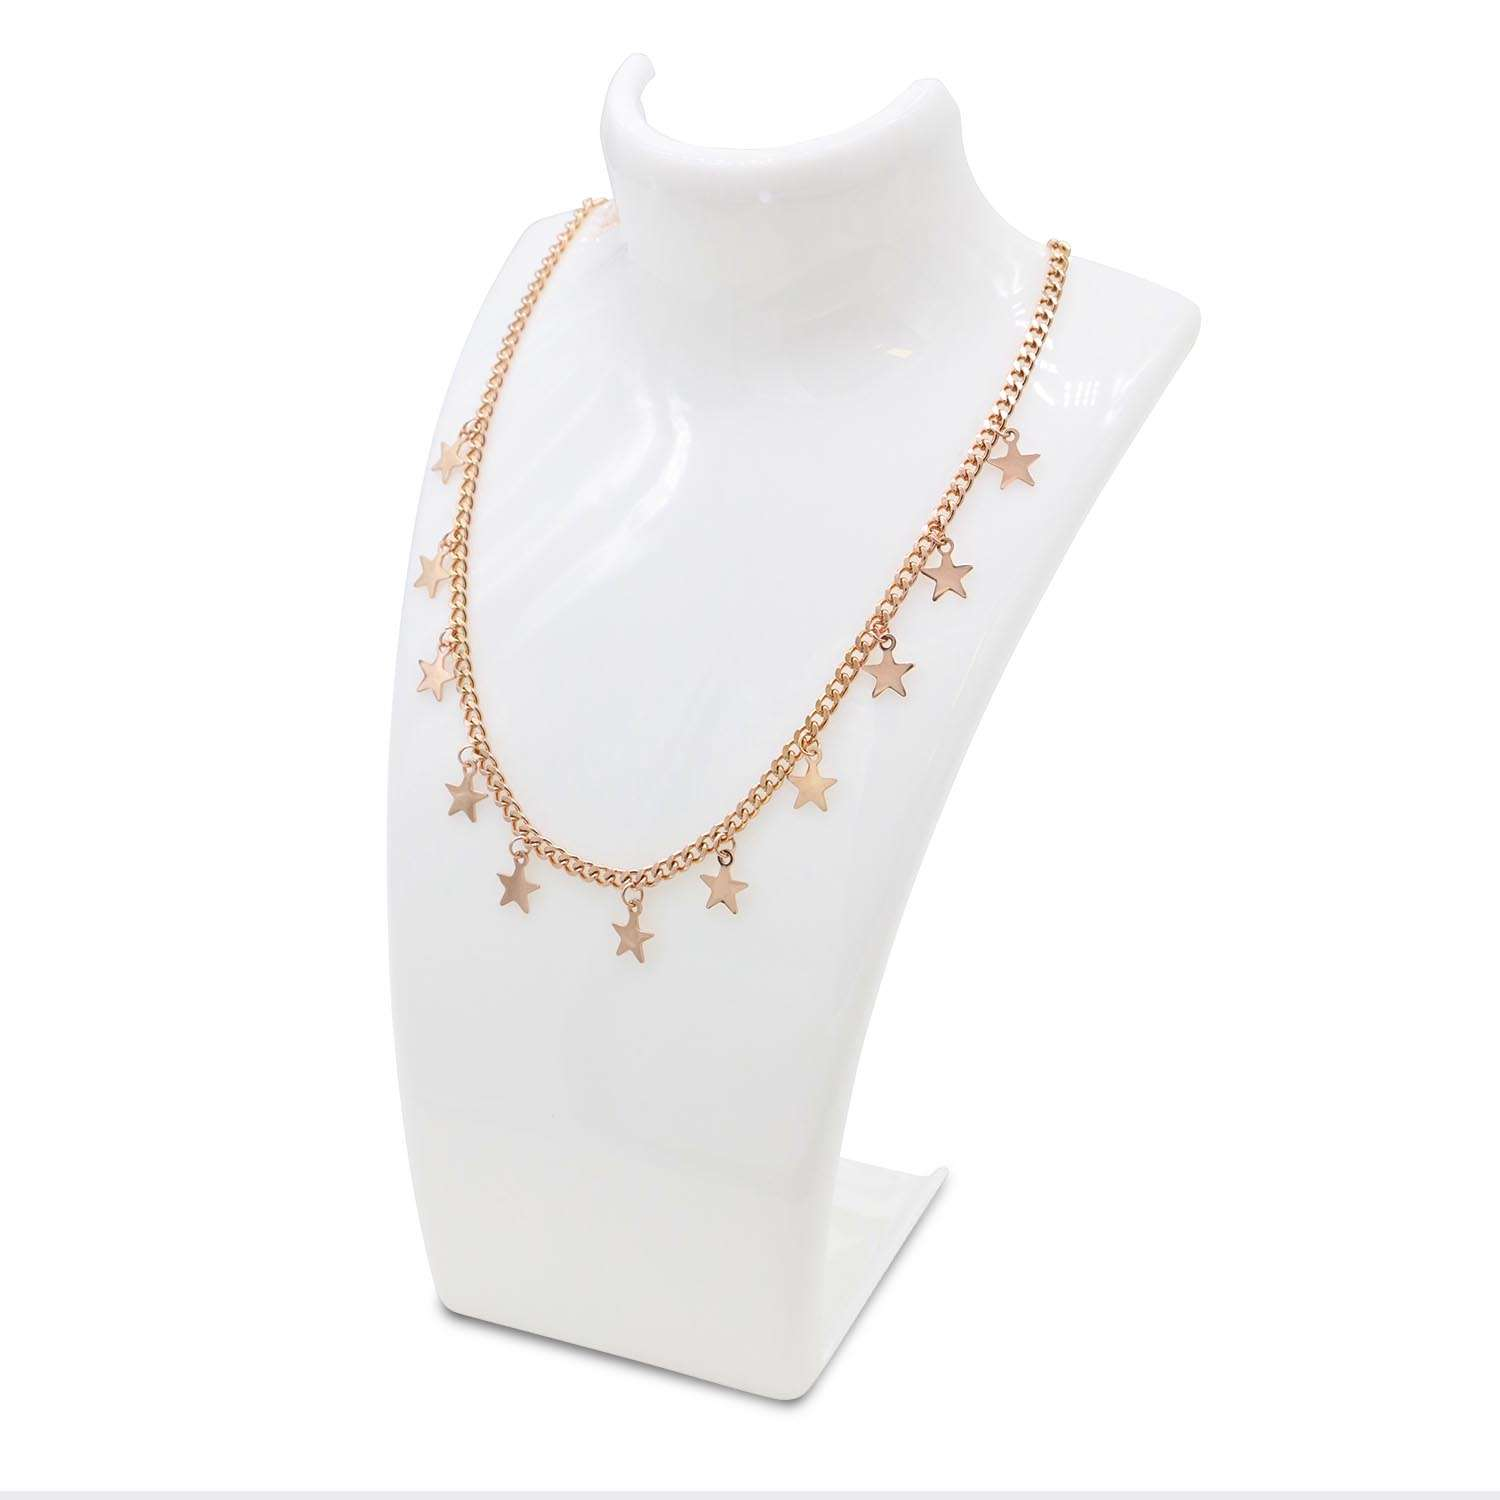 Necklace Star Pendant Choker Rose Gold Curb Chain